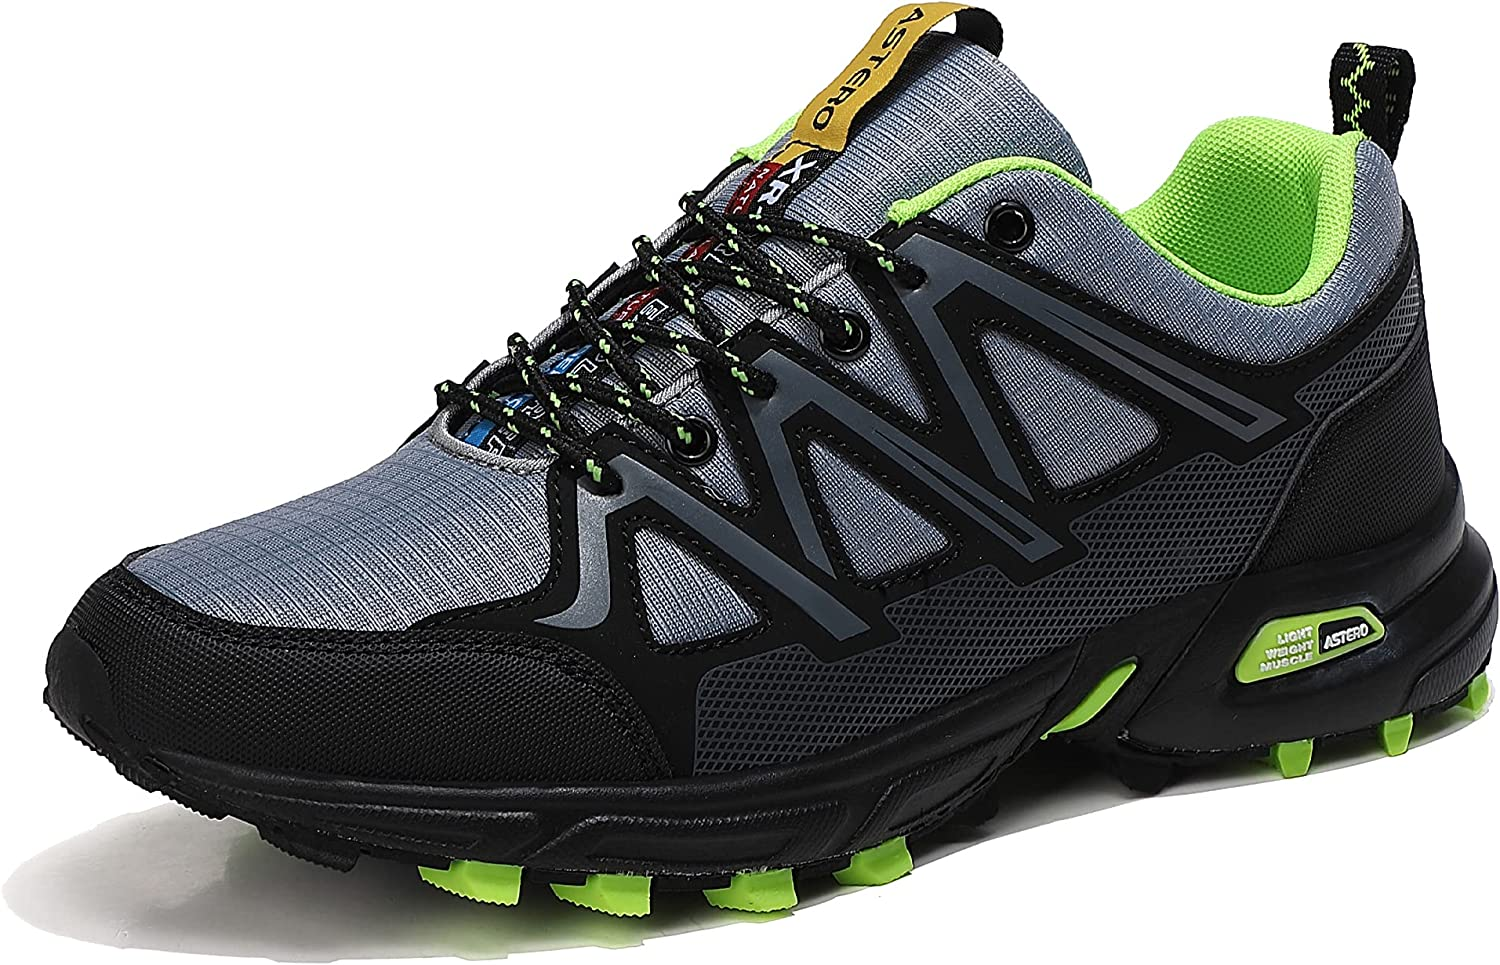 AX BOXING Men's Rapid rise Some reservation Trail Running Shoes Anti-Skid Athl Walking